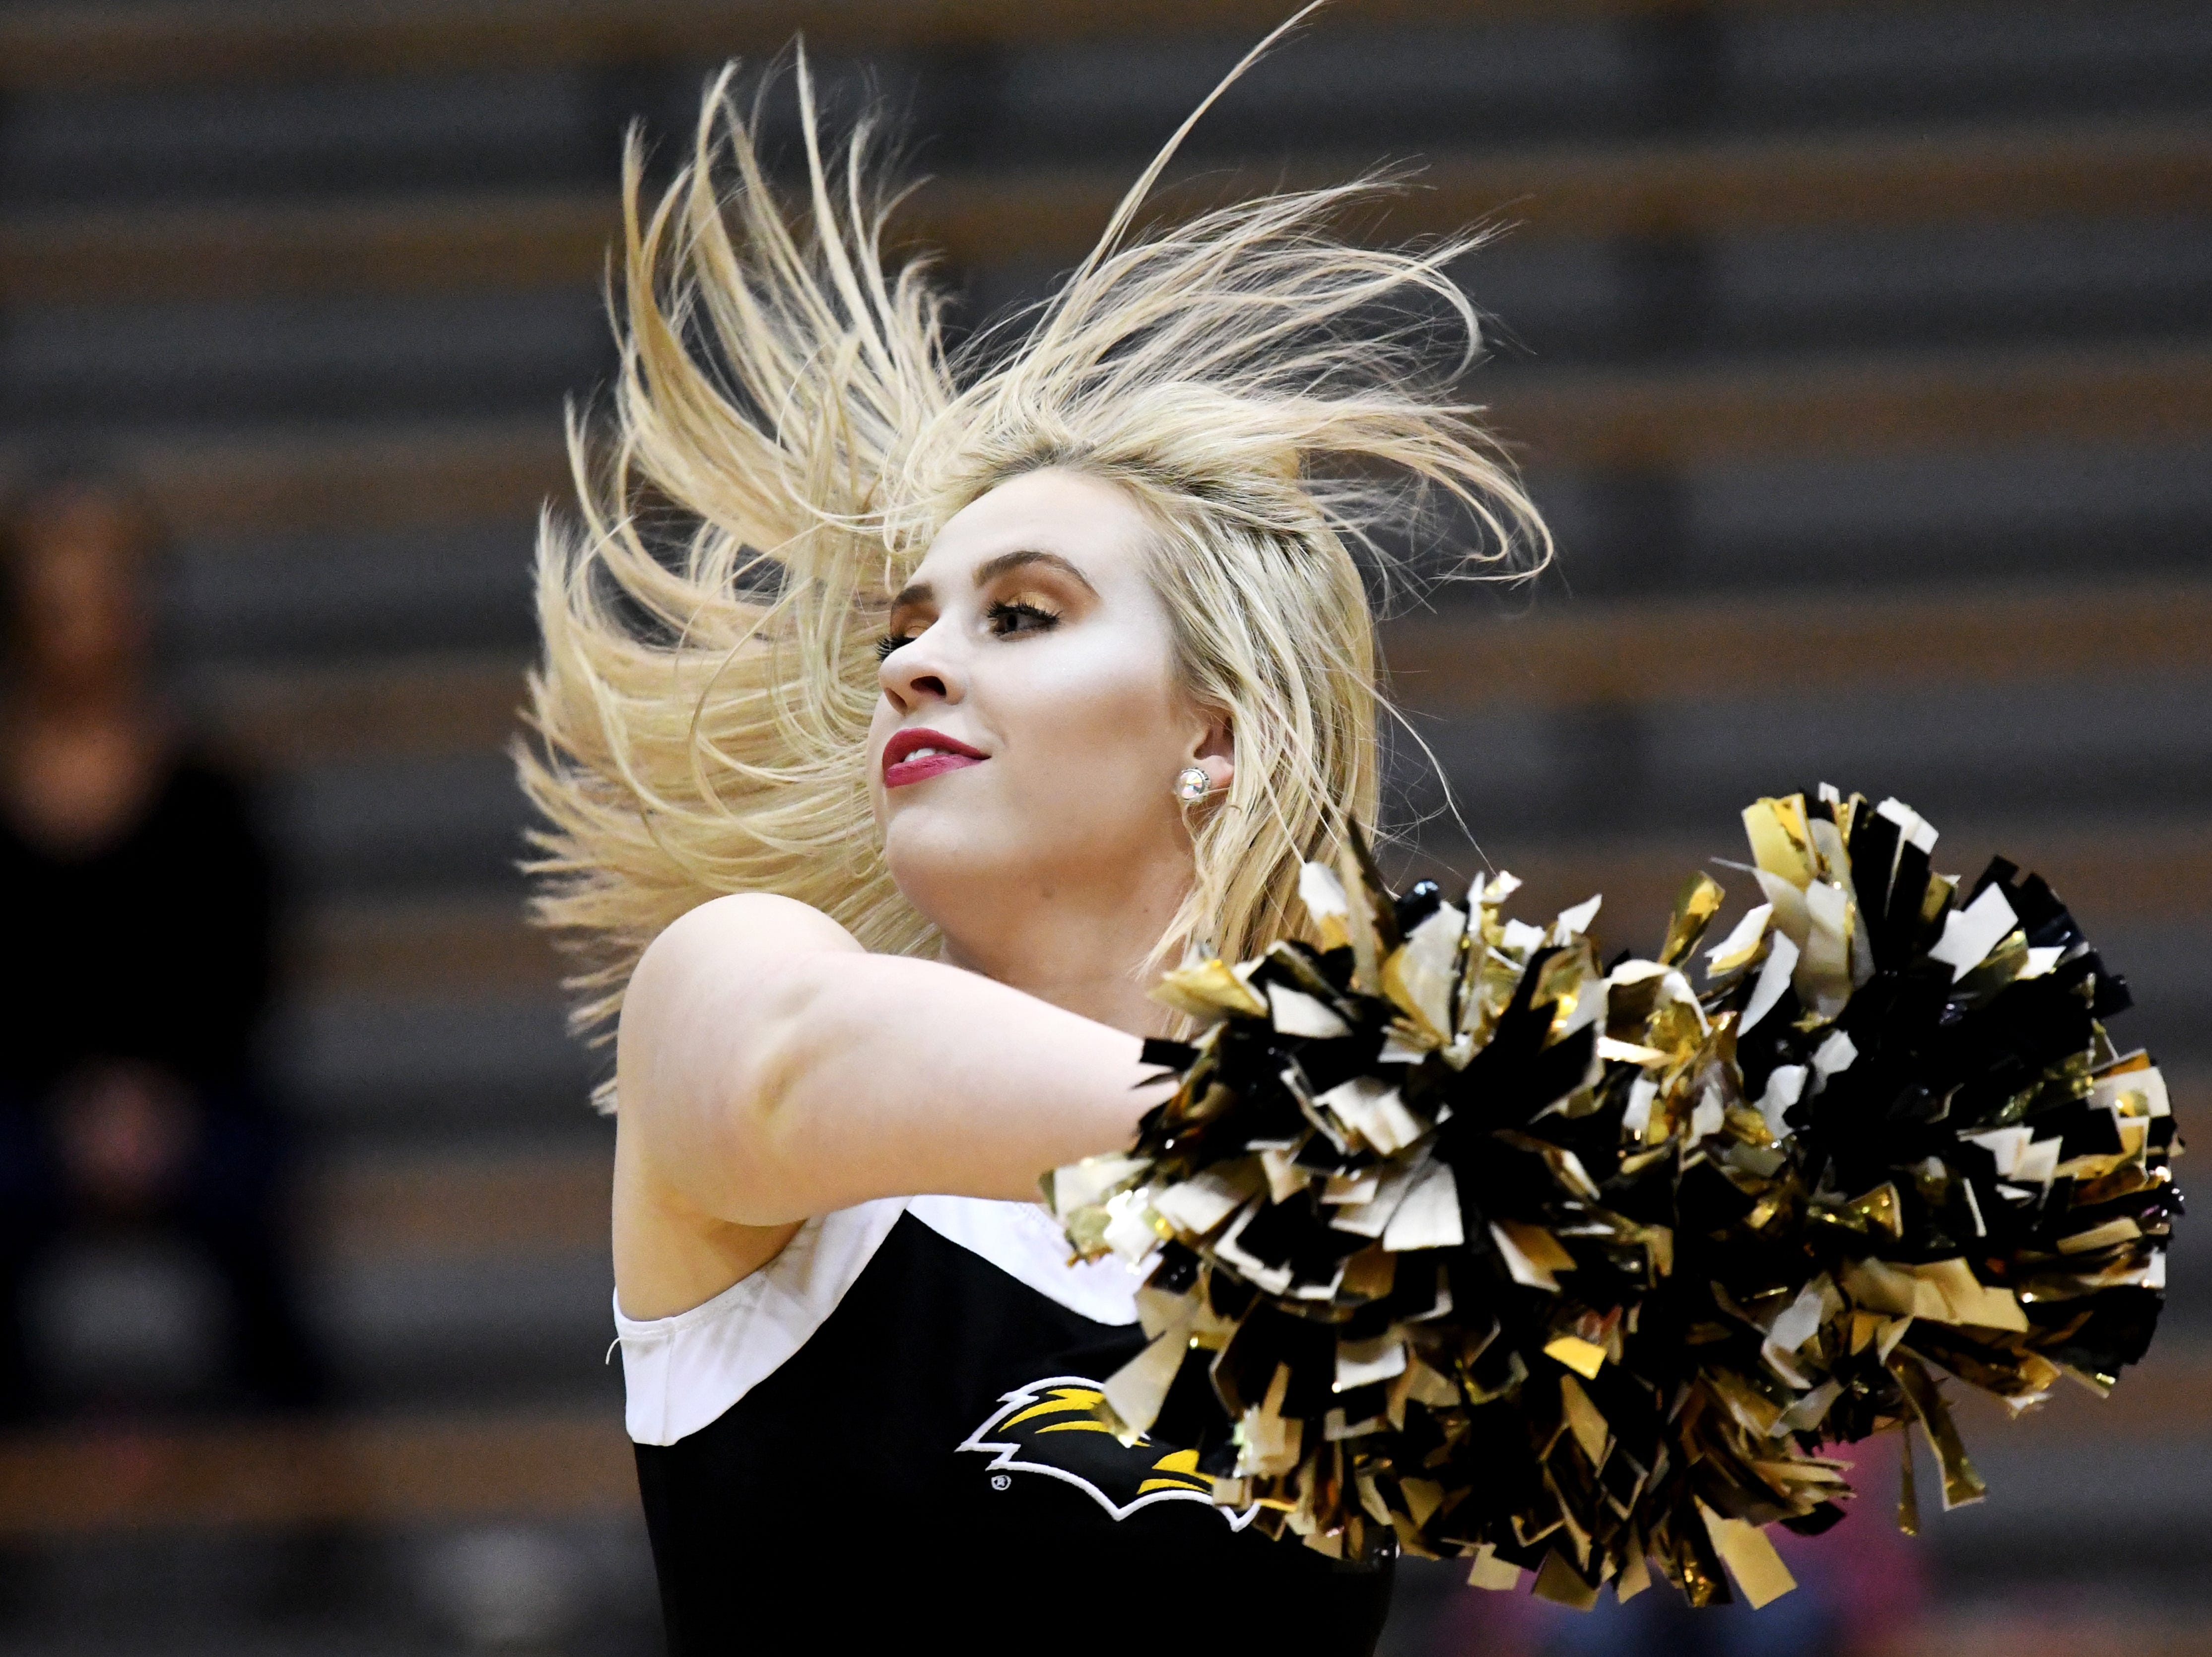 A Southern Miss dancer performs during a timeout in a game against South Alabama in Reed Green Coliseum on Wednesday, November 28, 2018.